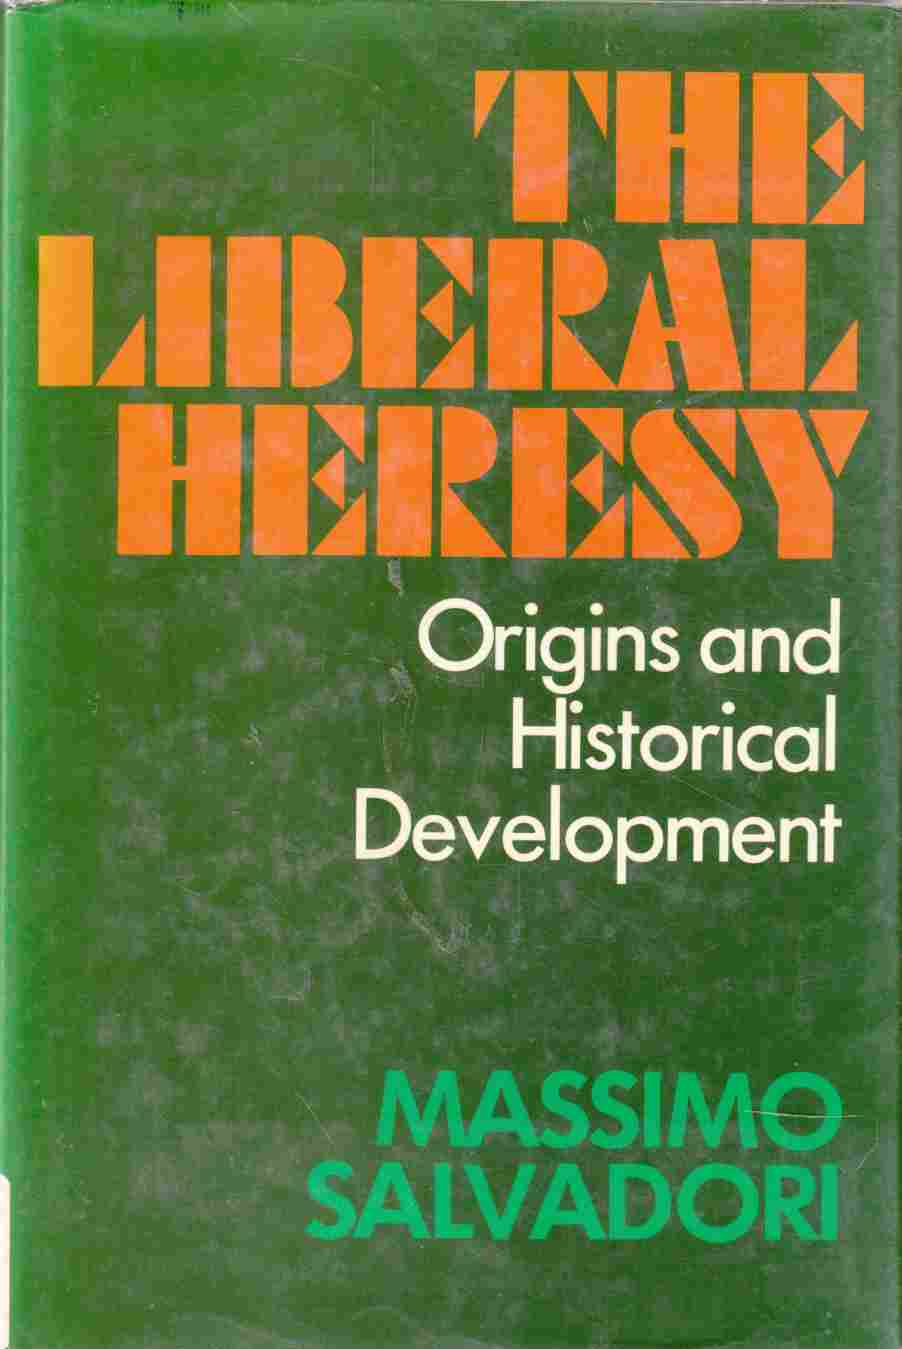 Image for The Liberal Heresy: Origins and Historical Development